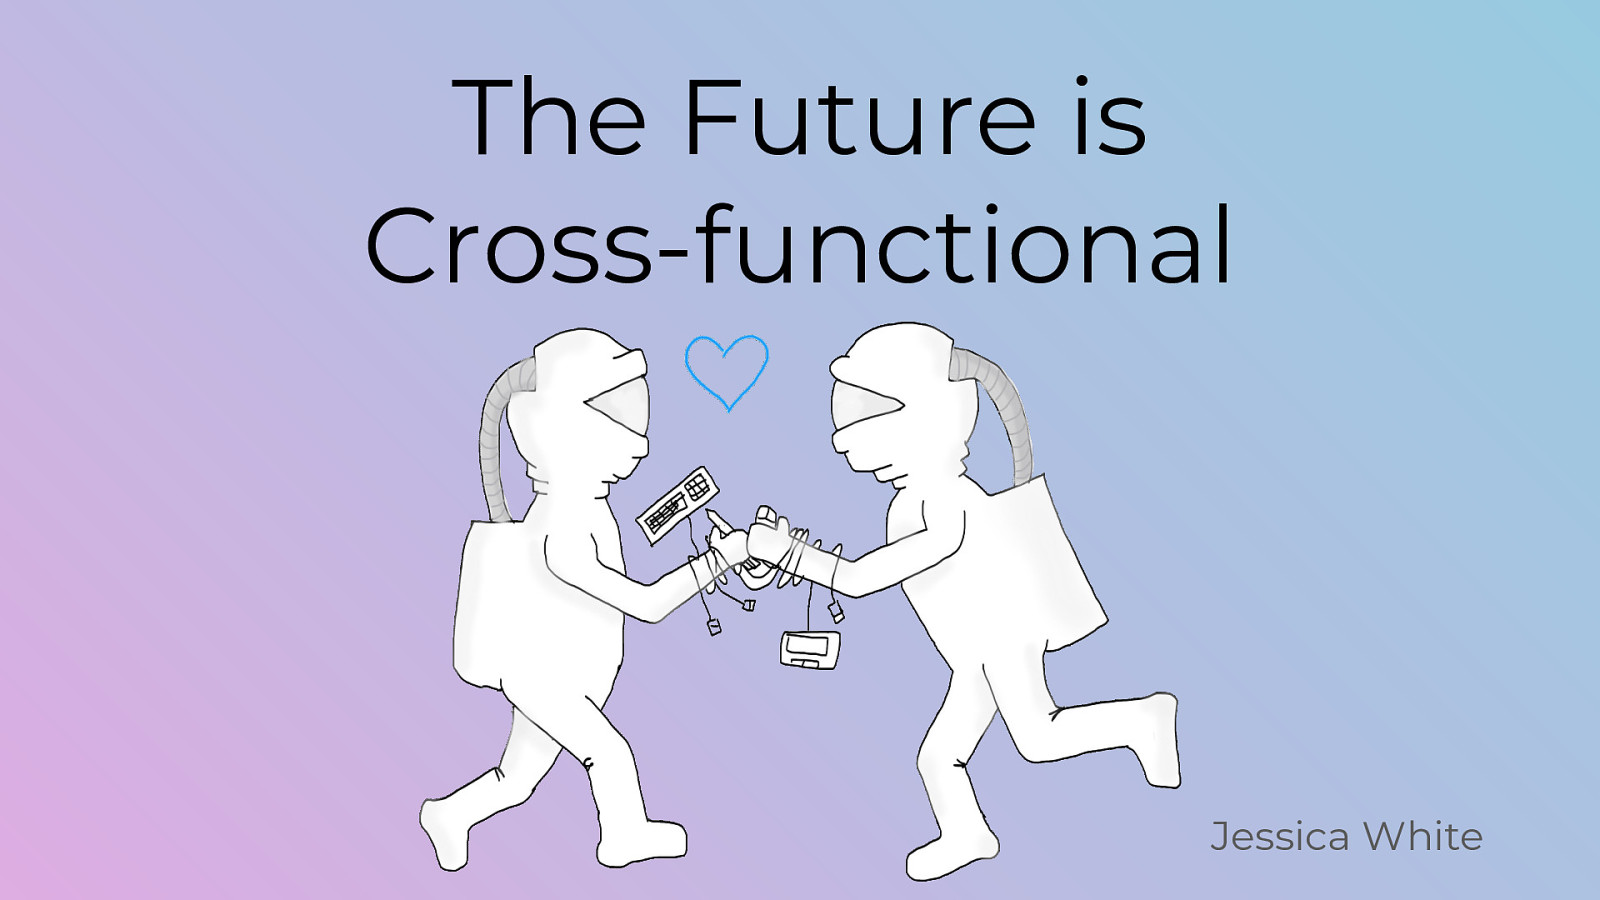 The Future is Cross-functional